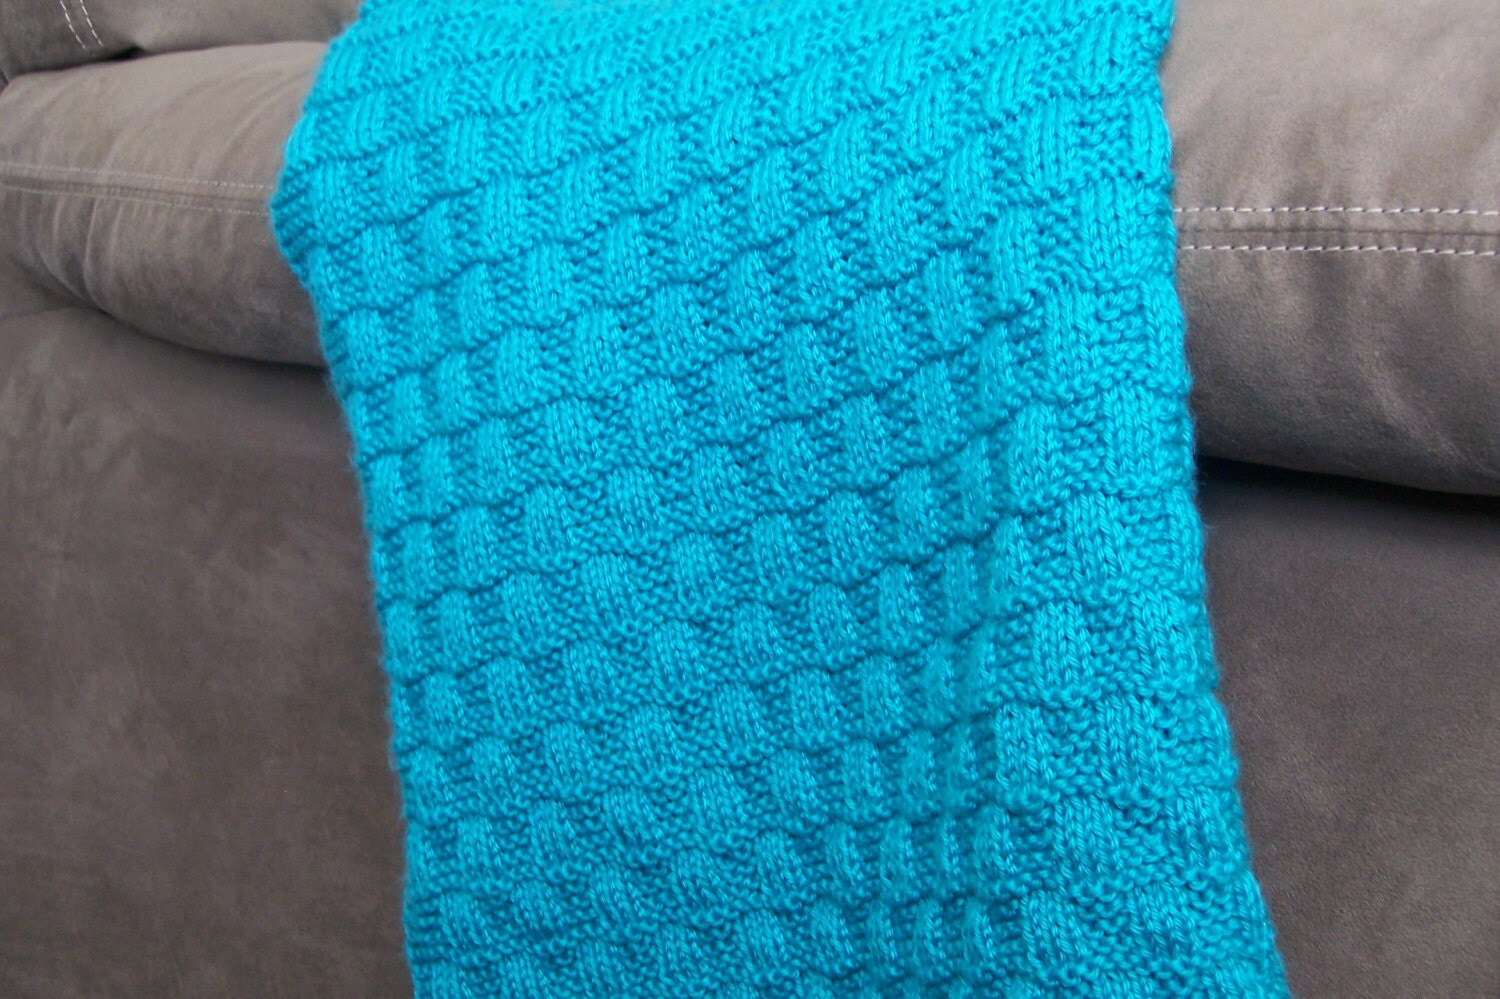 Knit Pattern Wavy Checkerboard Baby Blanket From